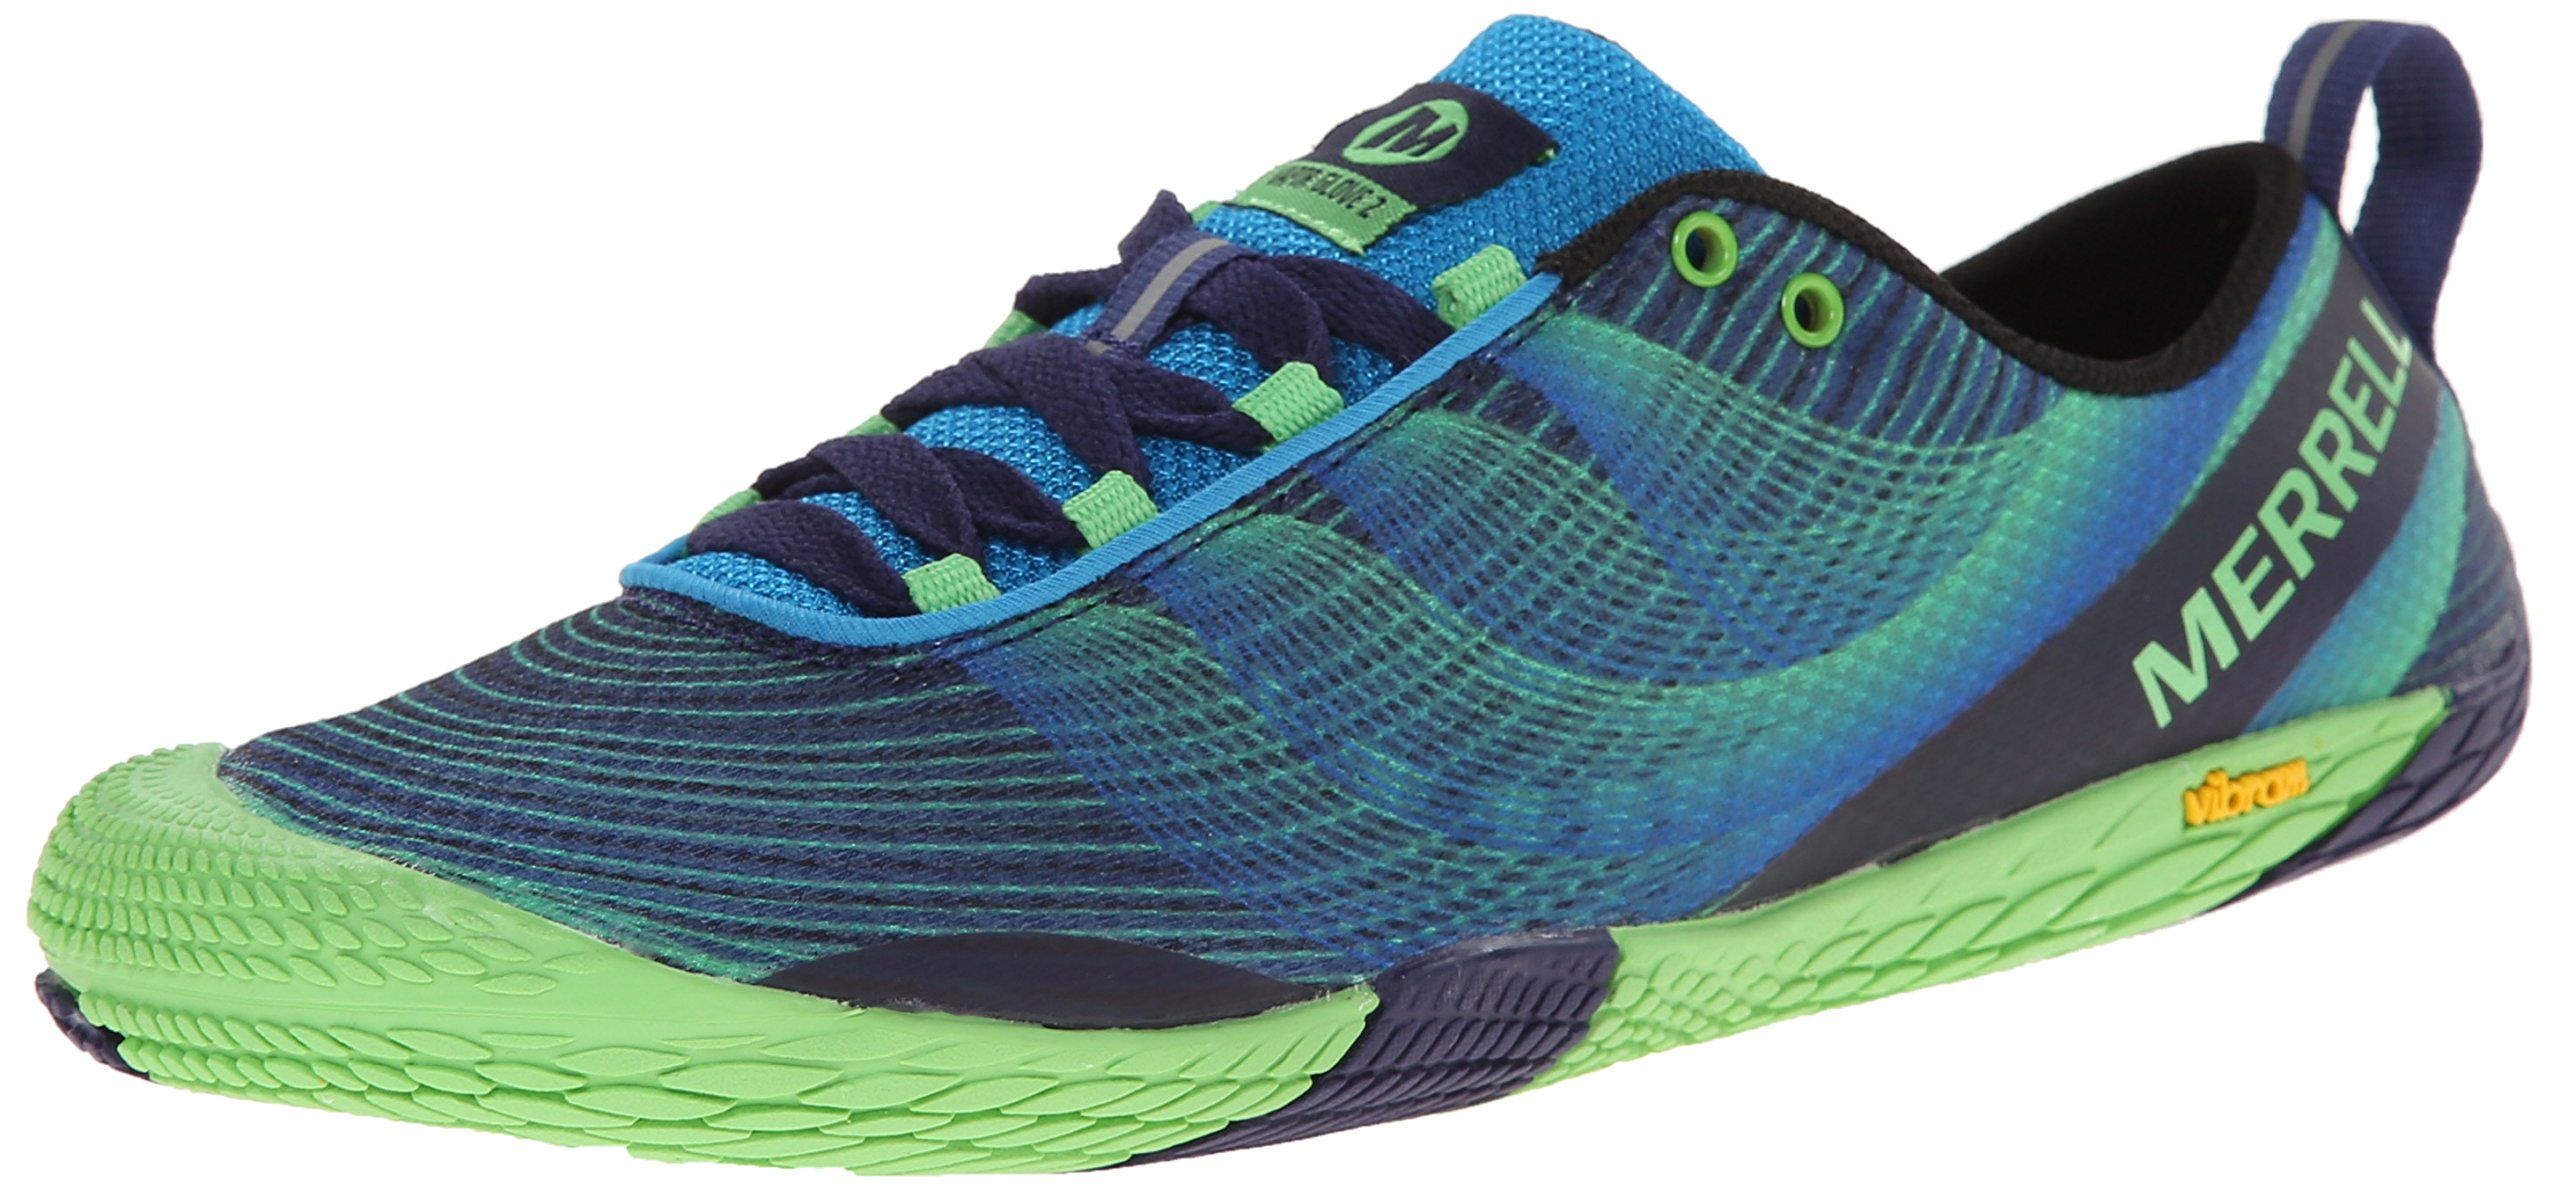 Merrell Men's Vapor Glove 2 Trail Running Shoe, Racer Blue/Bright Green, 8.5 M US by Merrell